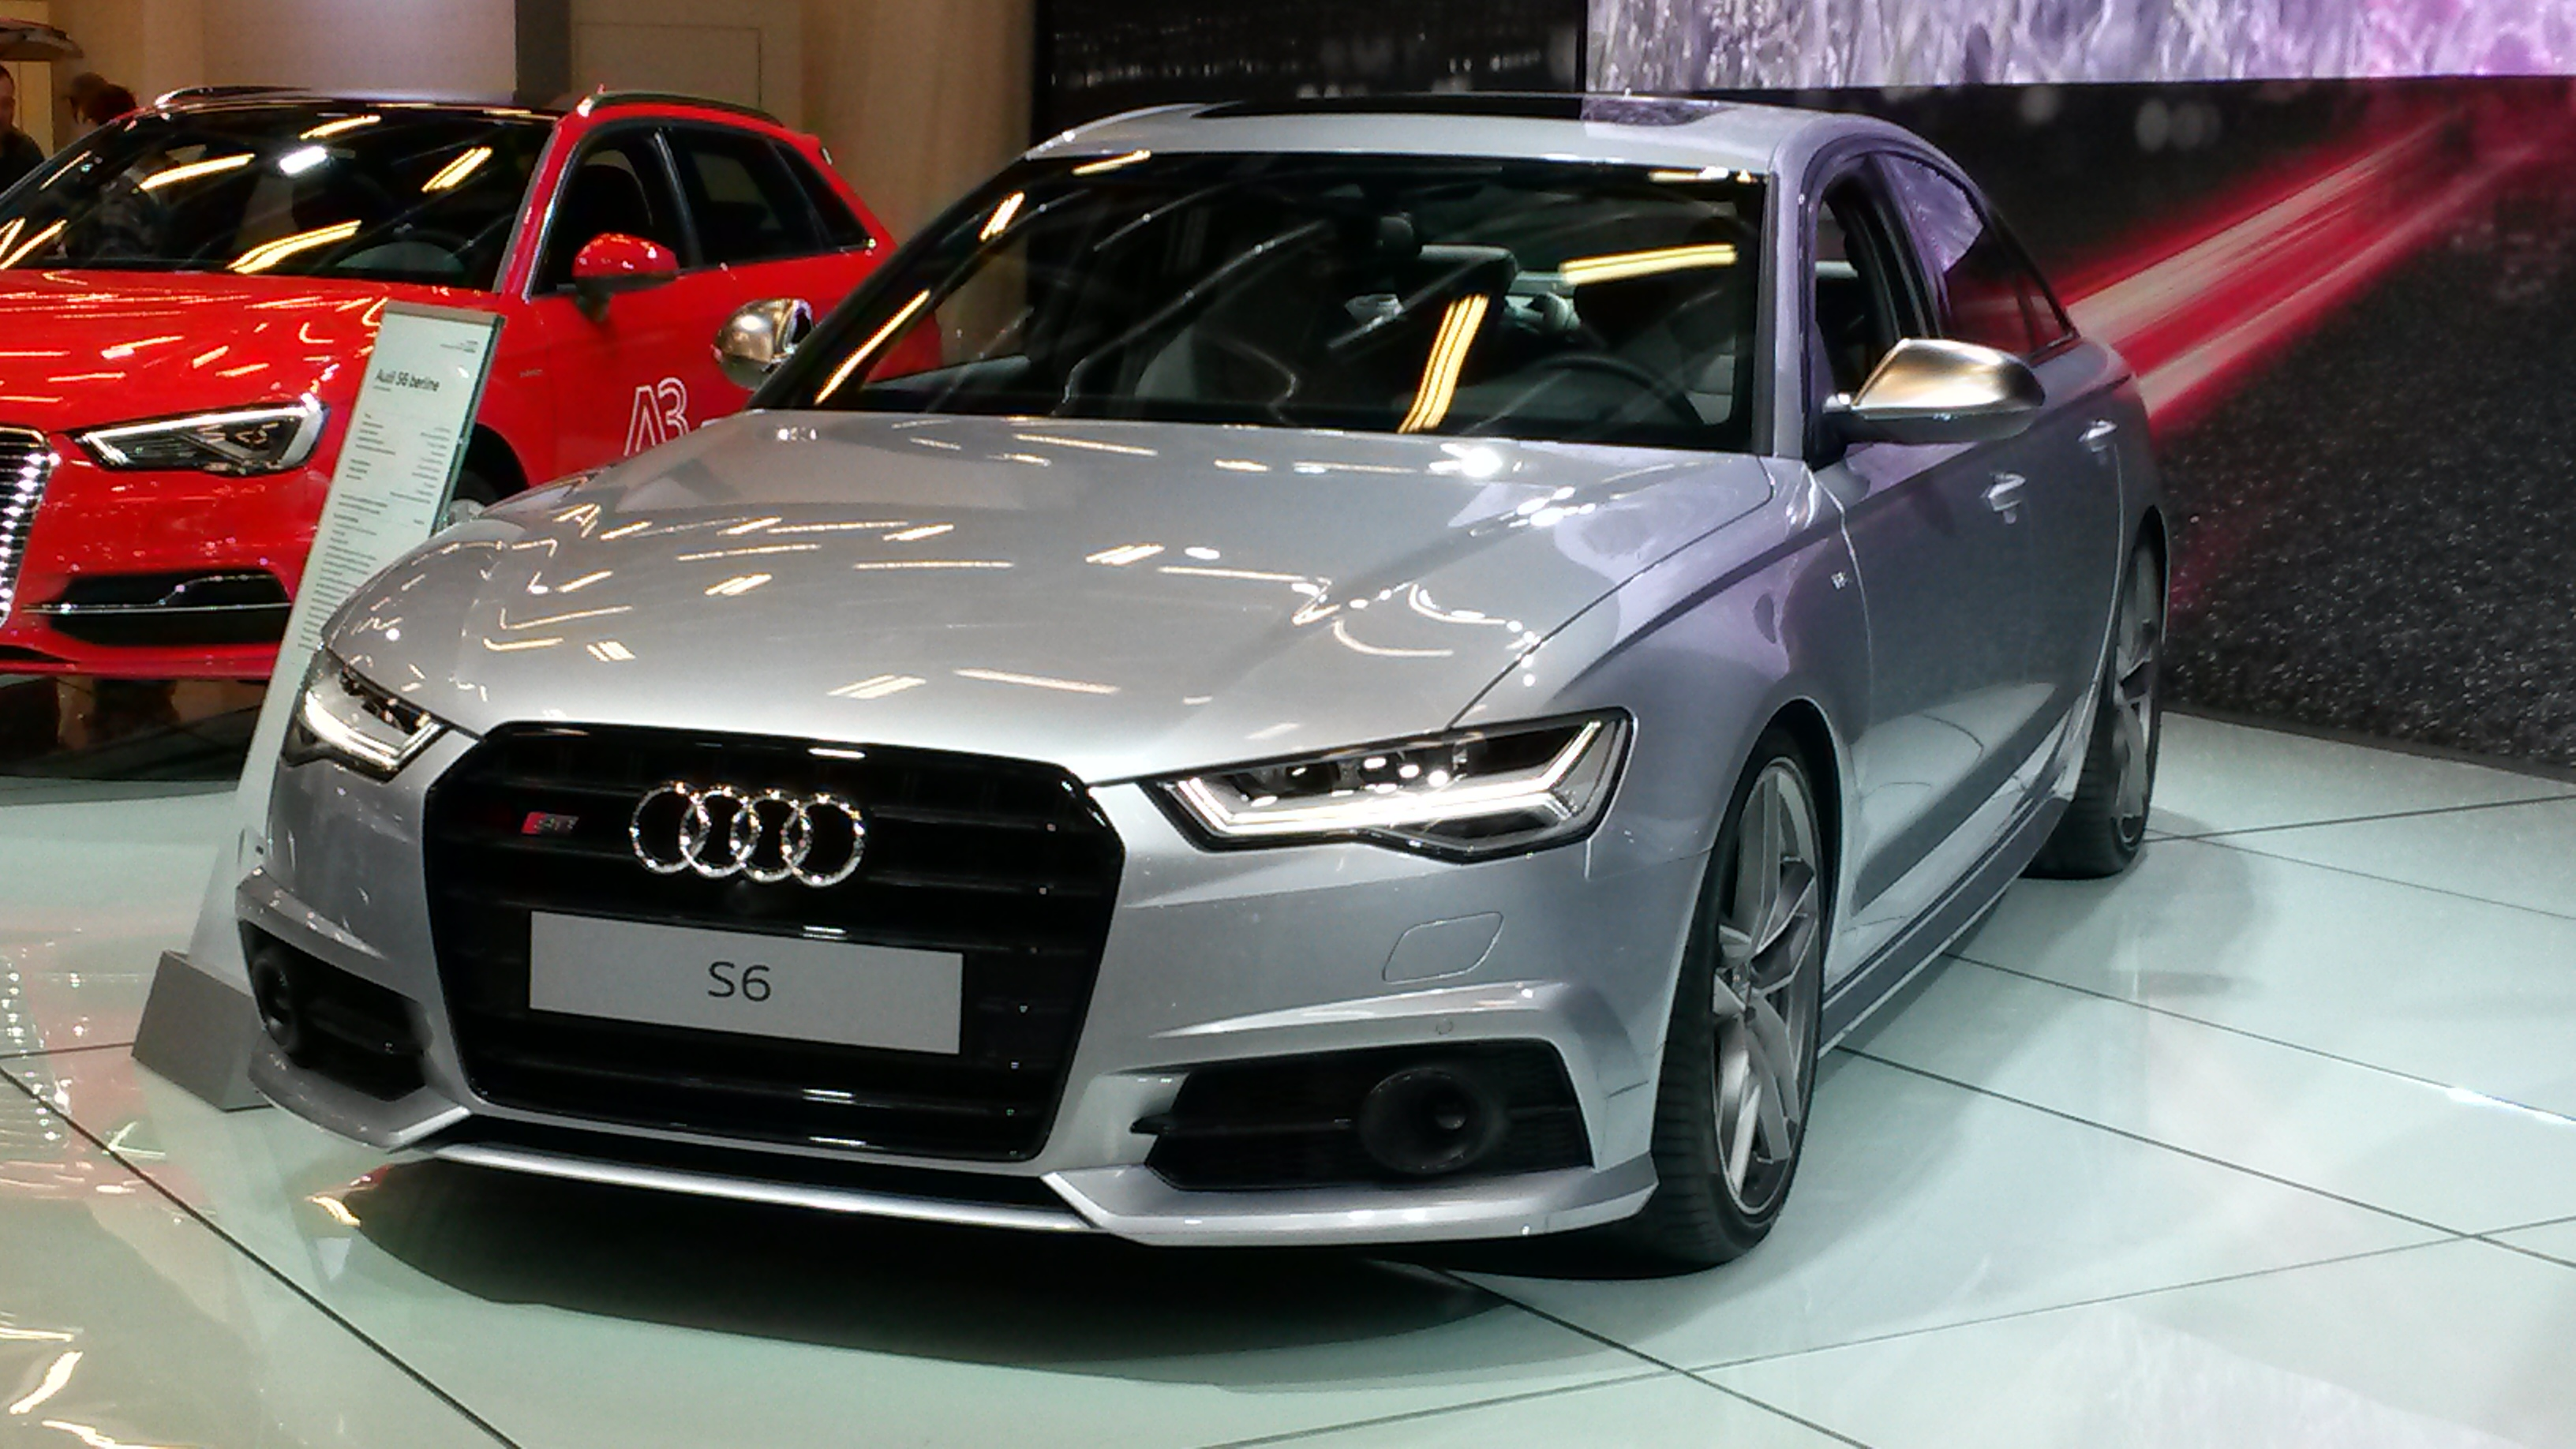 2016 audi a6 avant c7 pictures information and specs auto. Black Bedroom Furniture Sets. Home Design Ideas